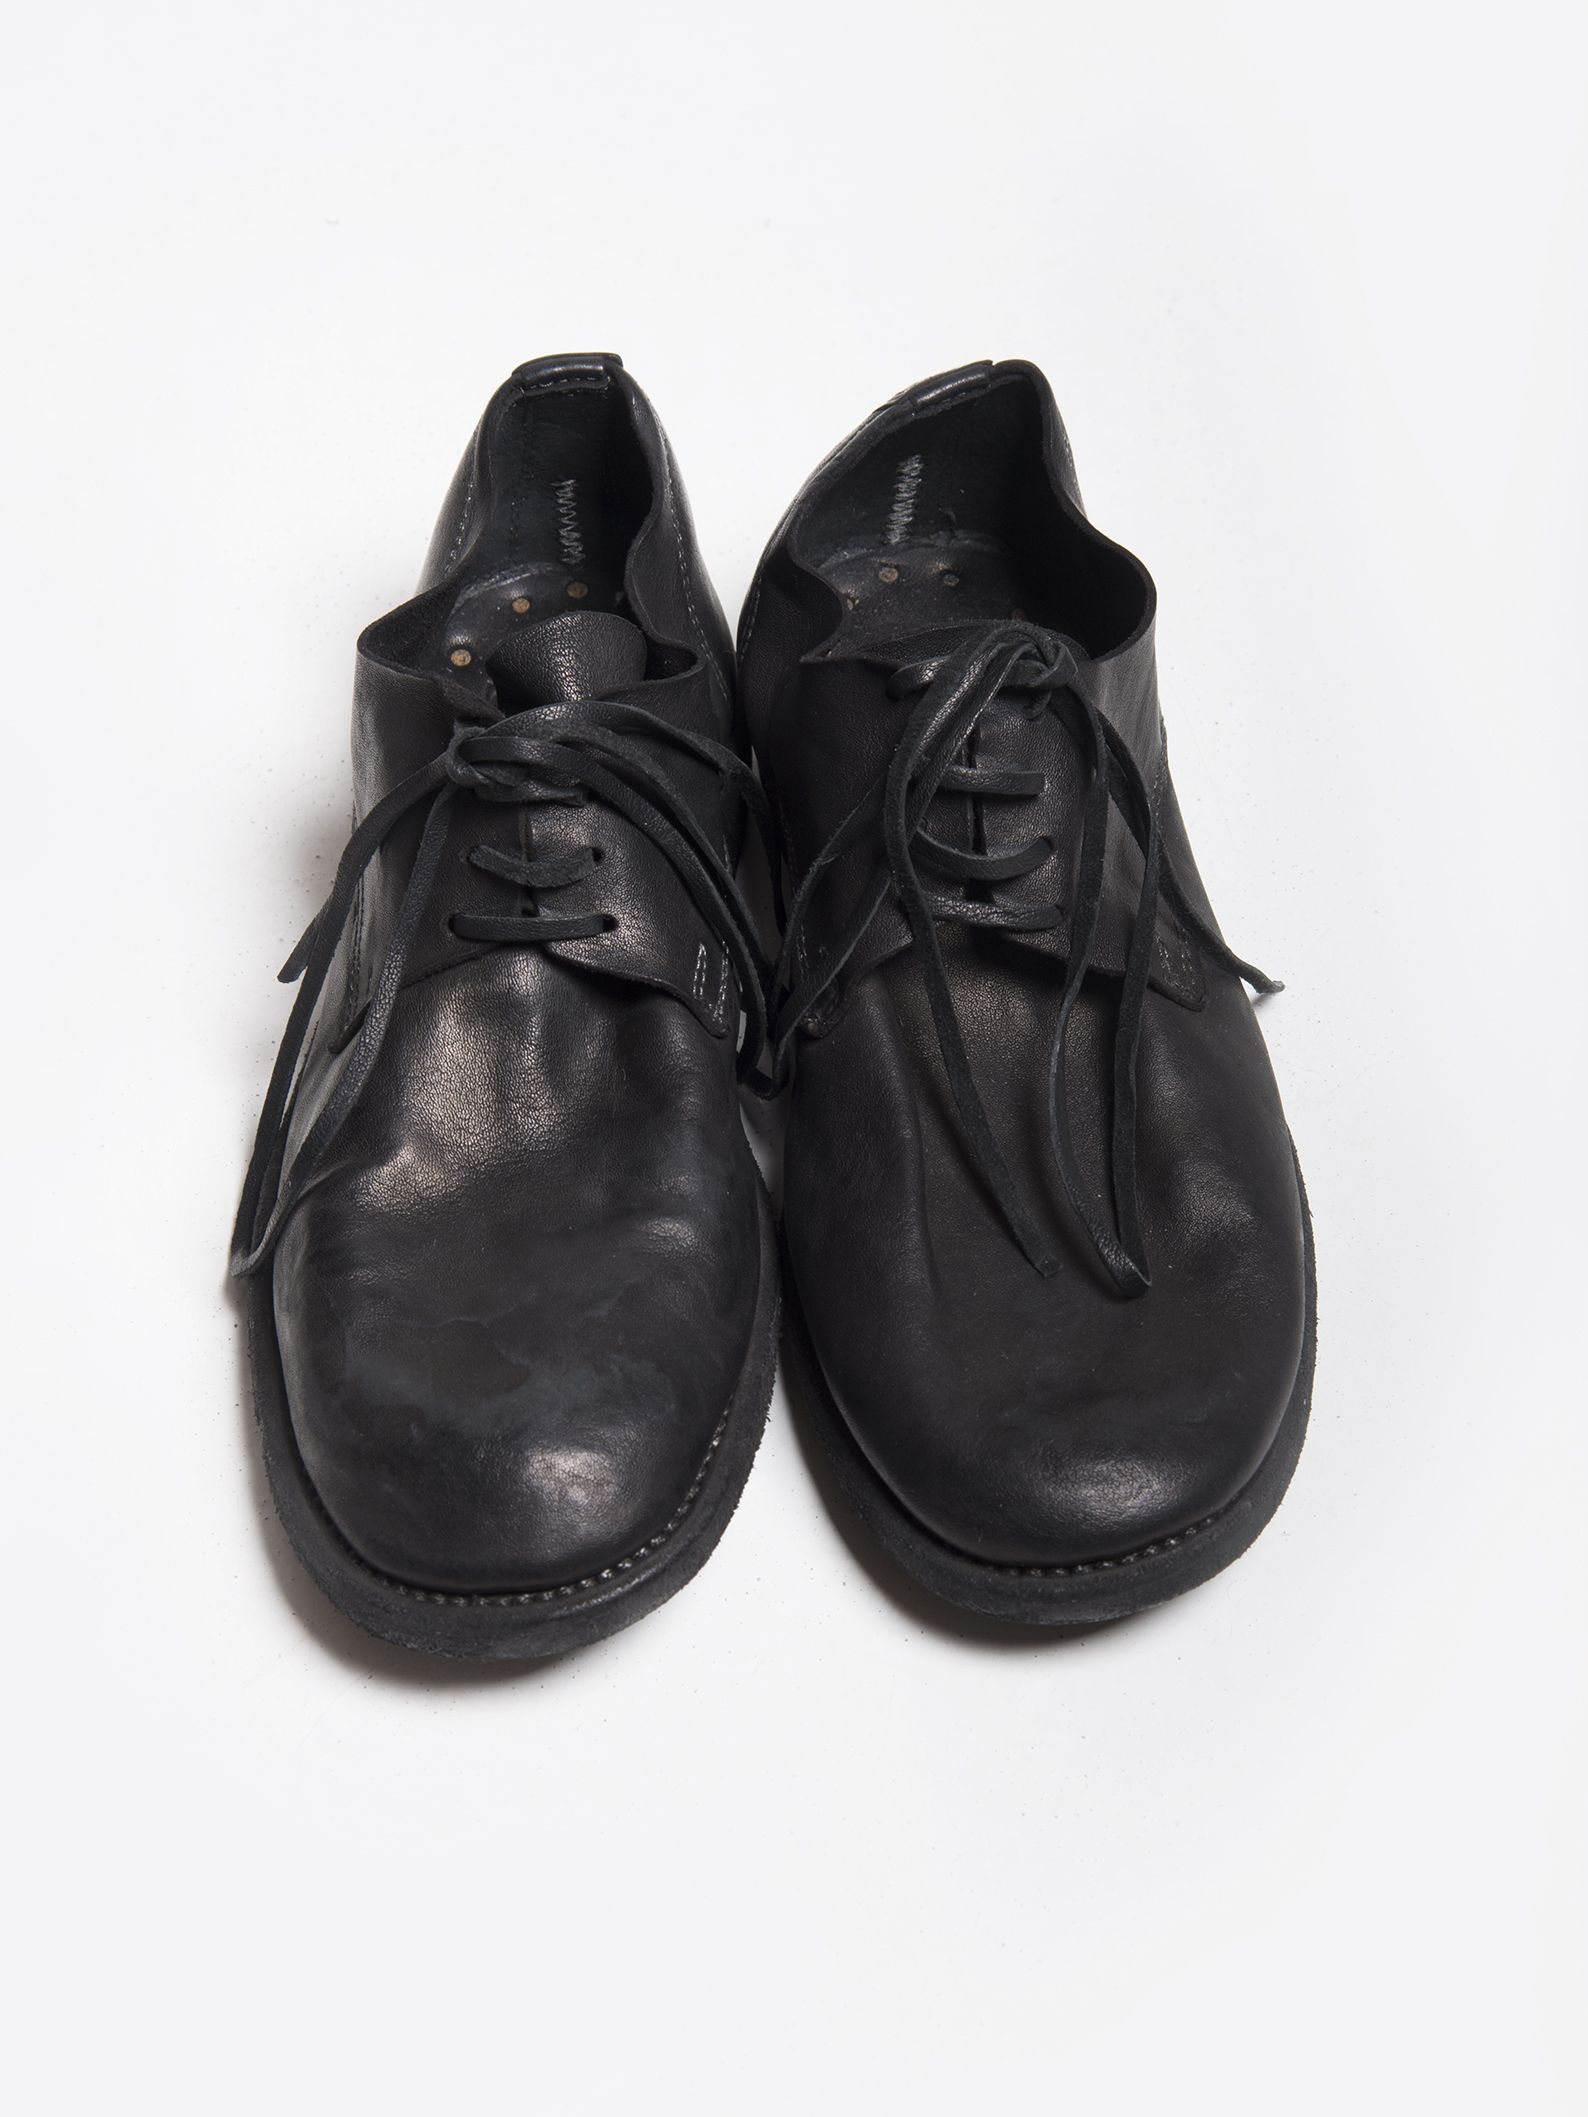 Guidi oxford shoes manchester great sale online cheap sale shop offer extremely cheap price new cheap online O9wnIWKce